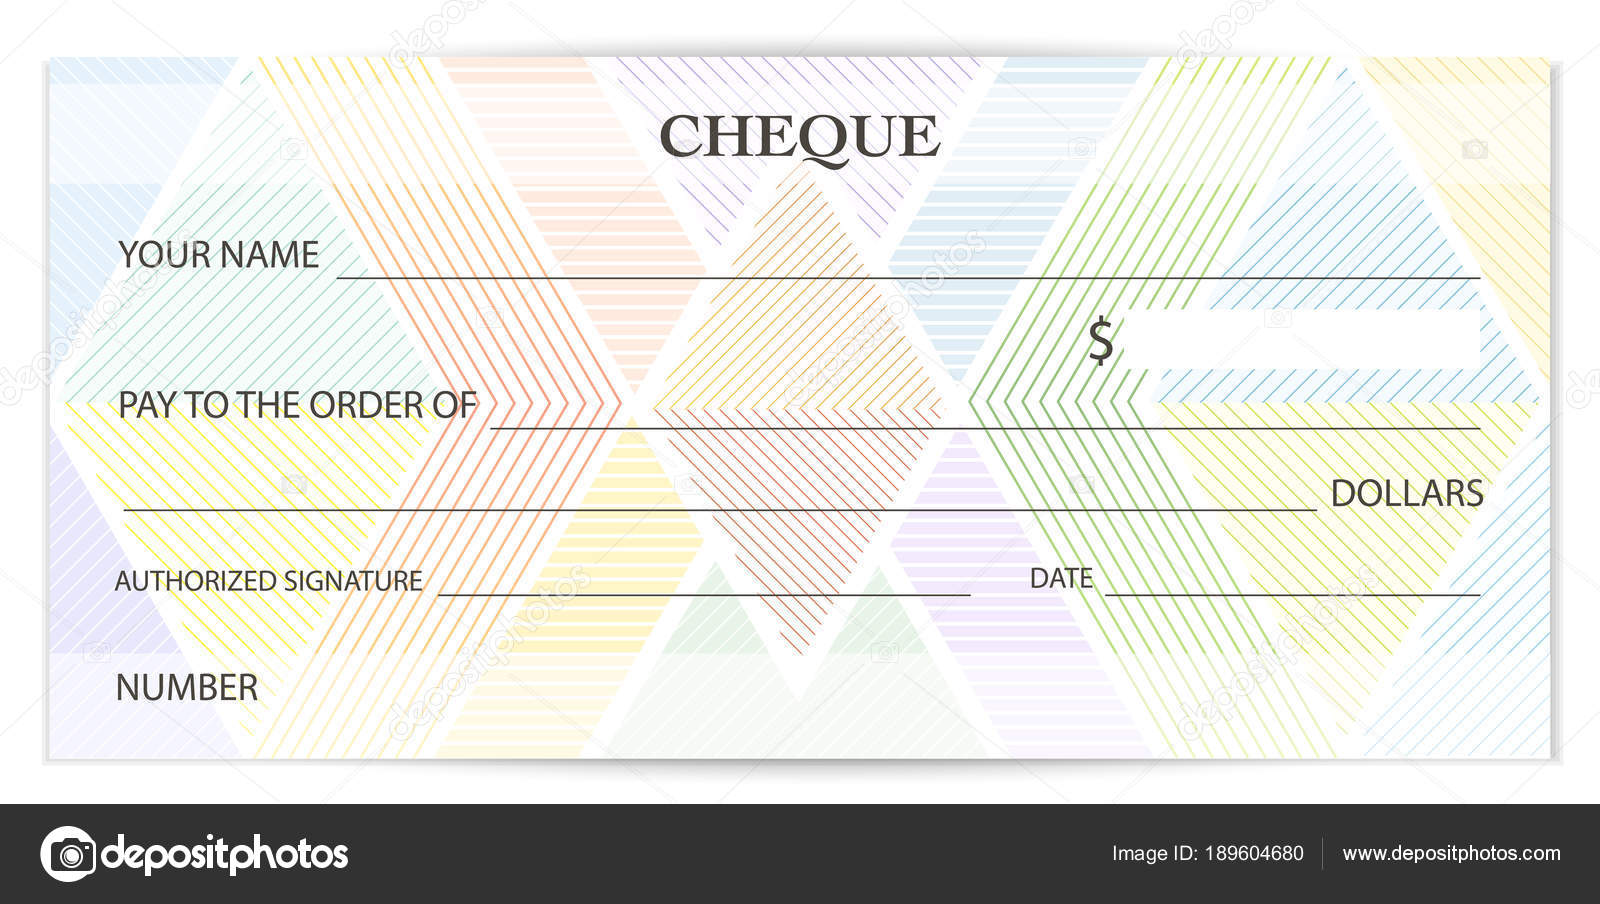 check cheque chequebook template guilloche pattern abstract